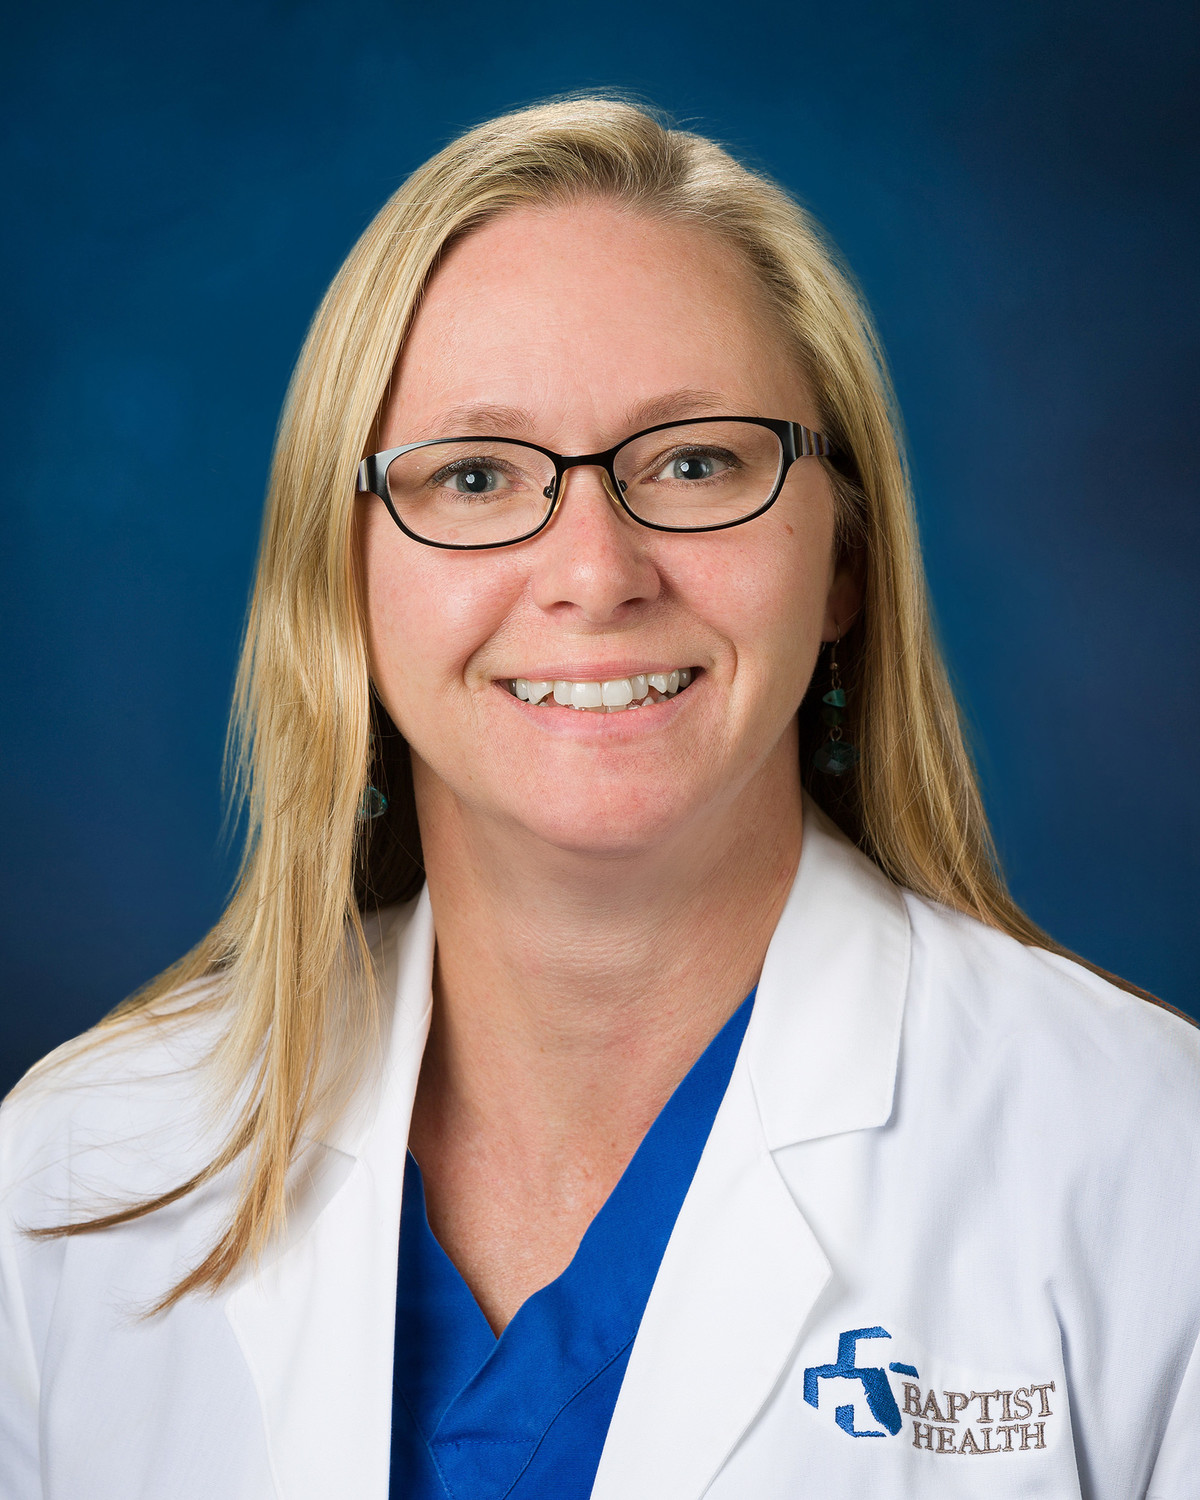 Jenny Malig, MSN, RN, RNC-OB, is manager of the Labor, Delivery, Recovery & Postpartum unit at Baptist Medical Center Beaches.